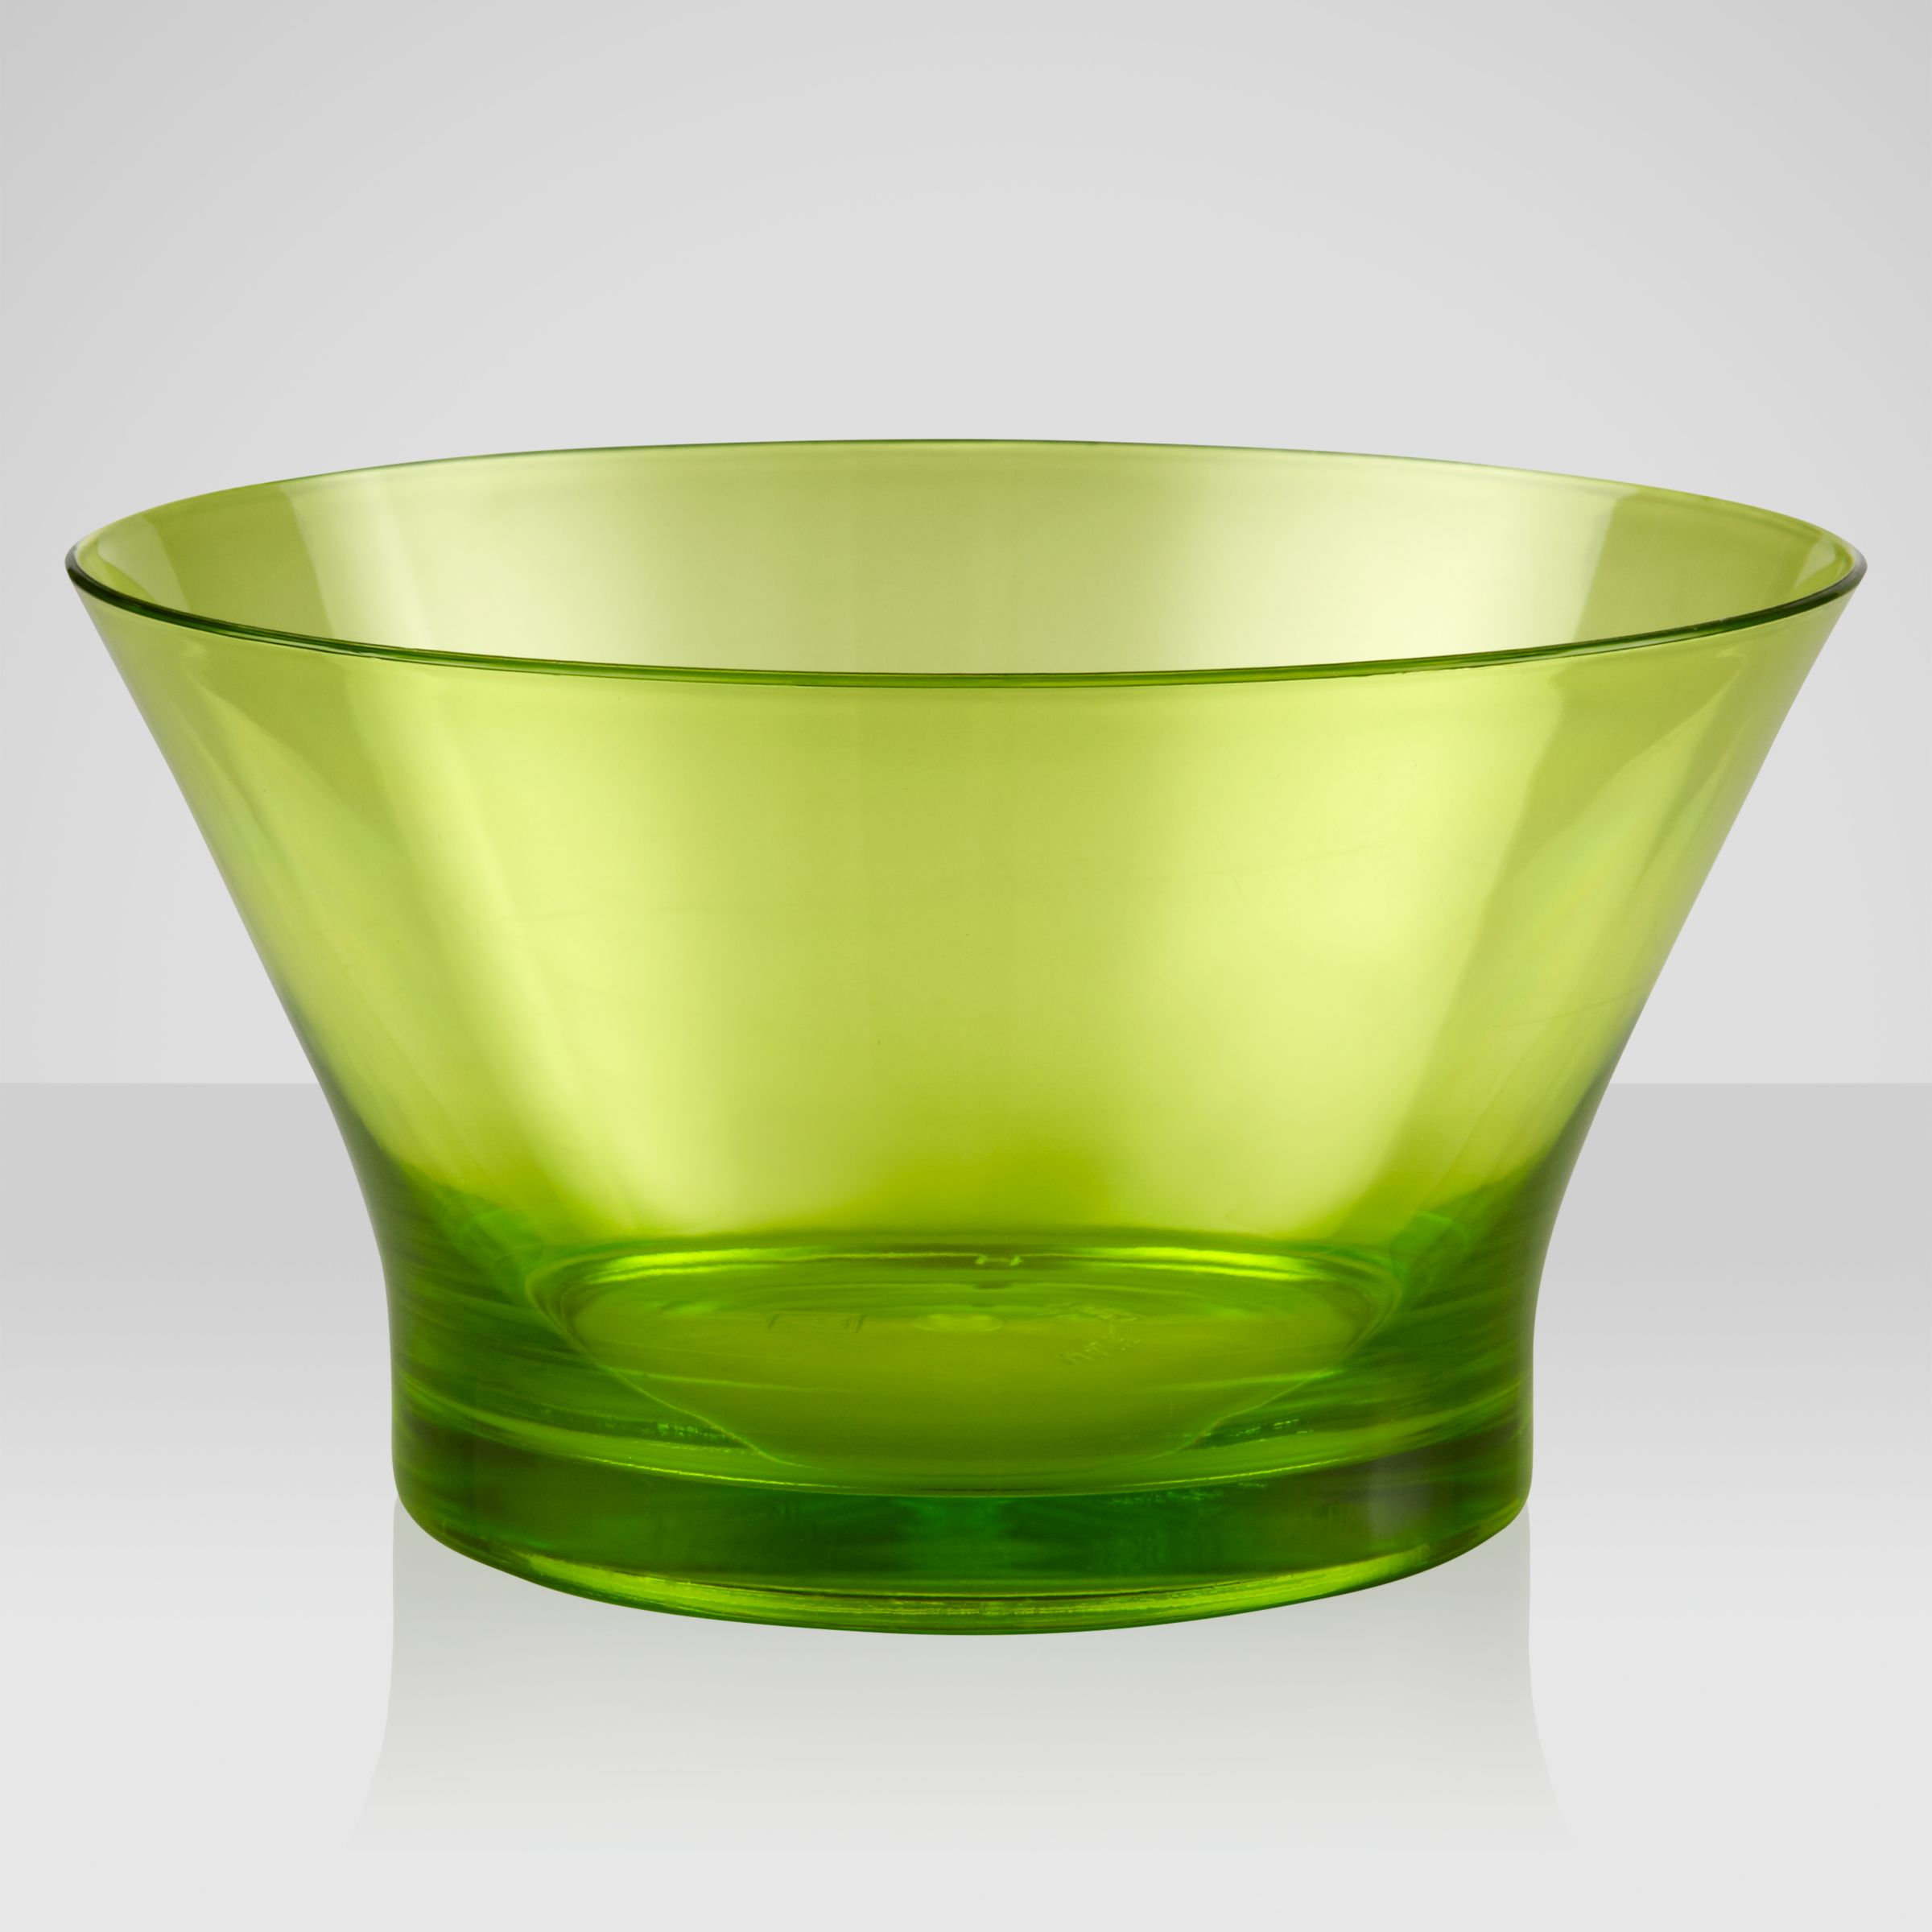 John Lewis Playnation Acrylic Bowls, Lime